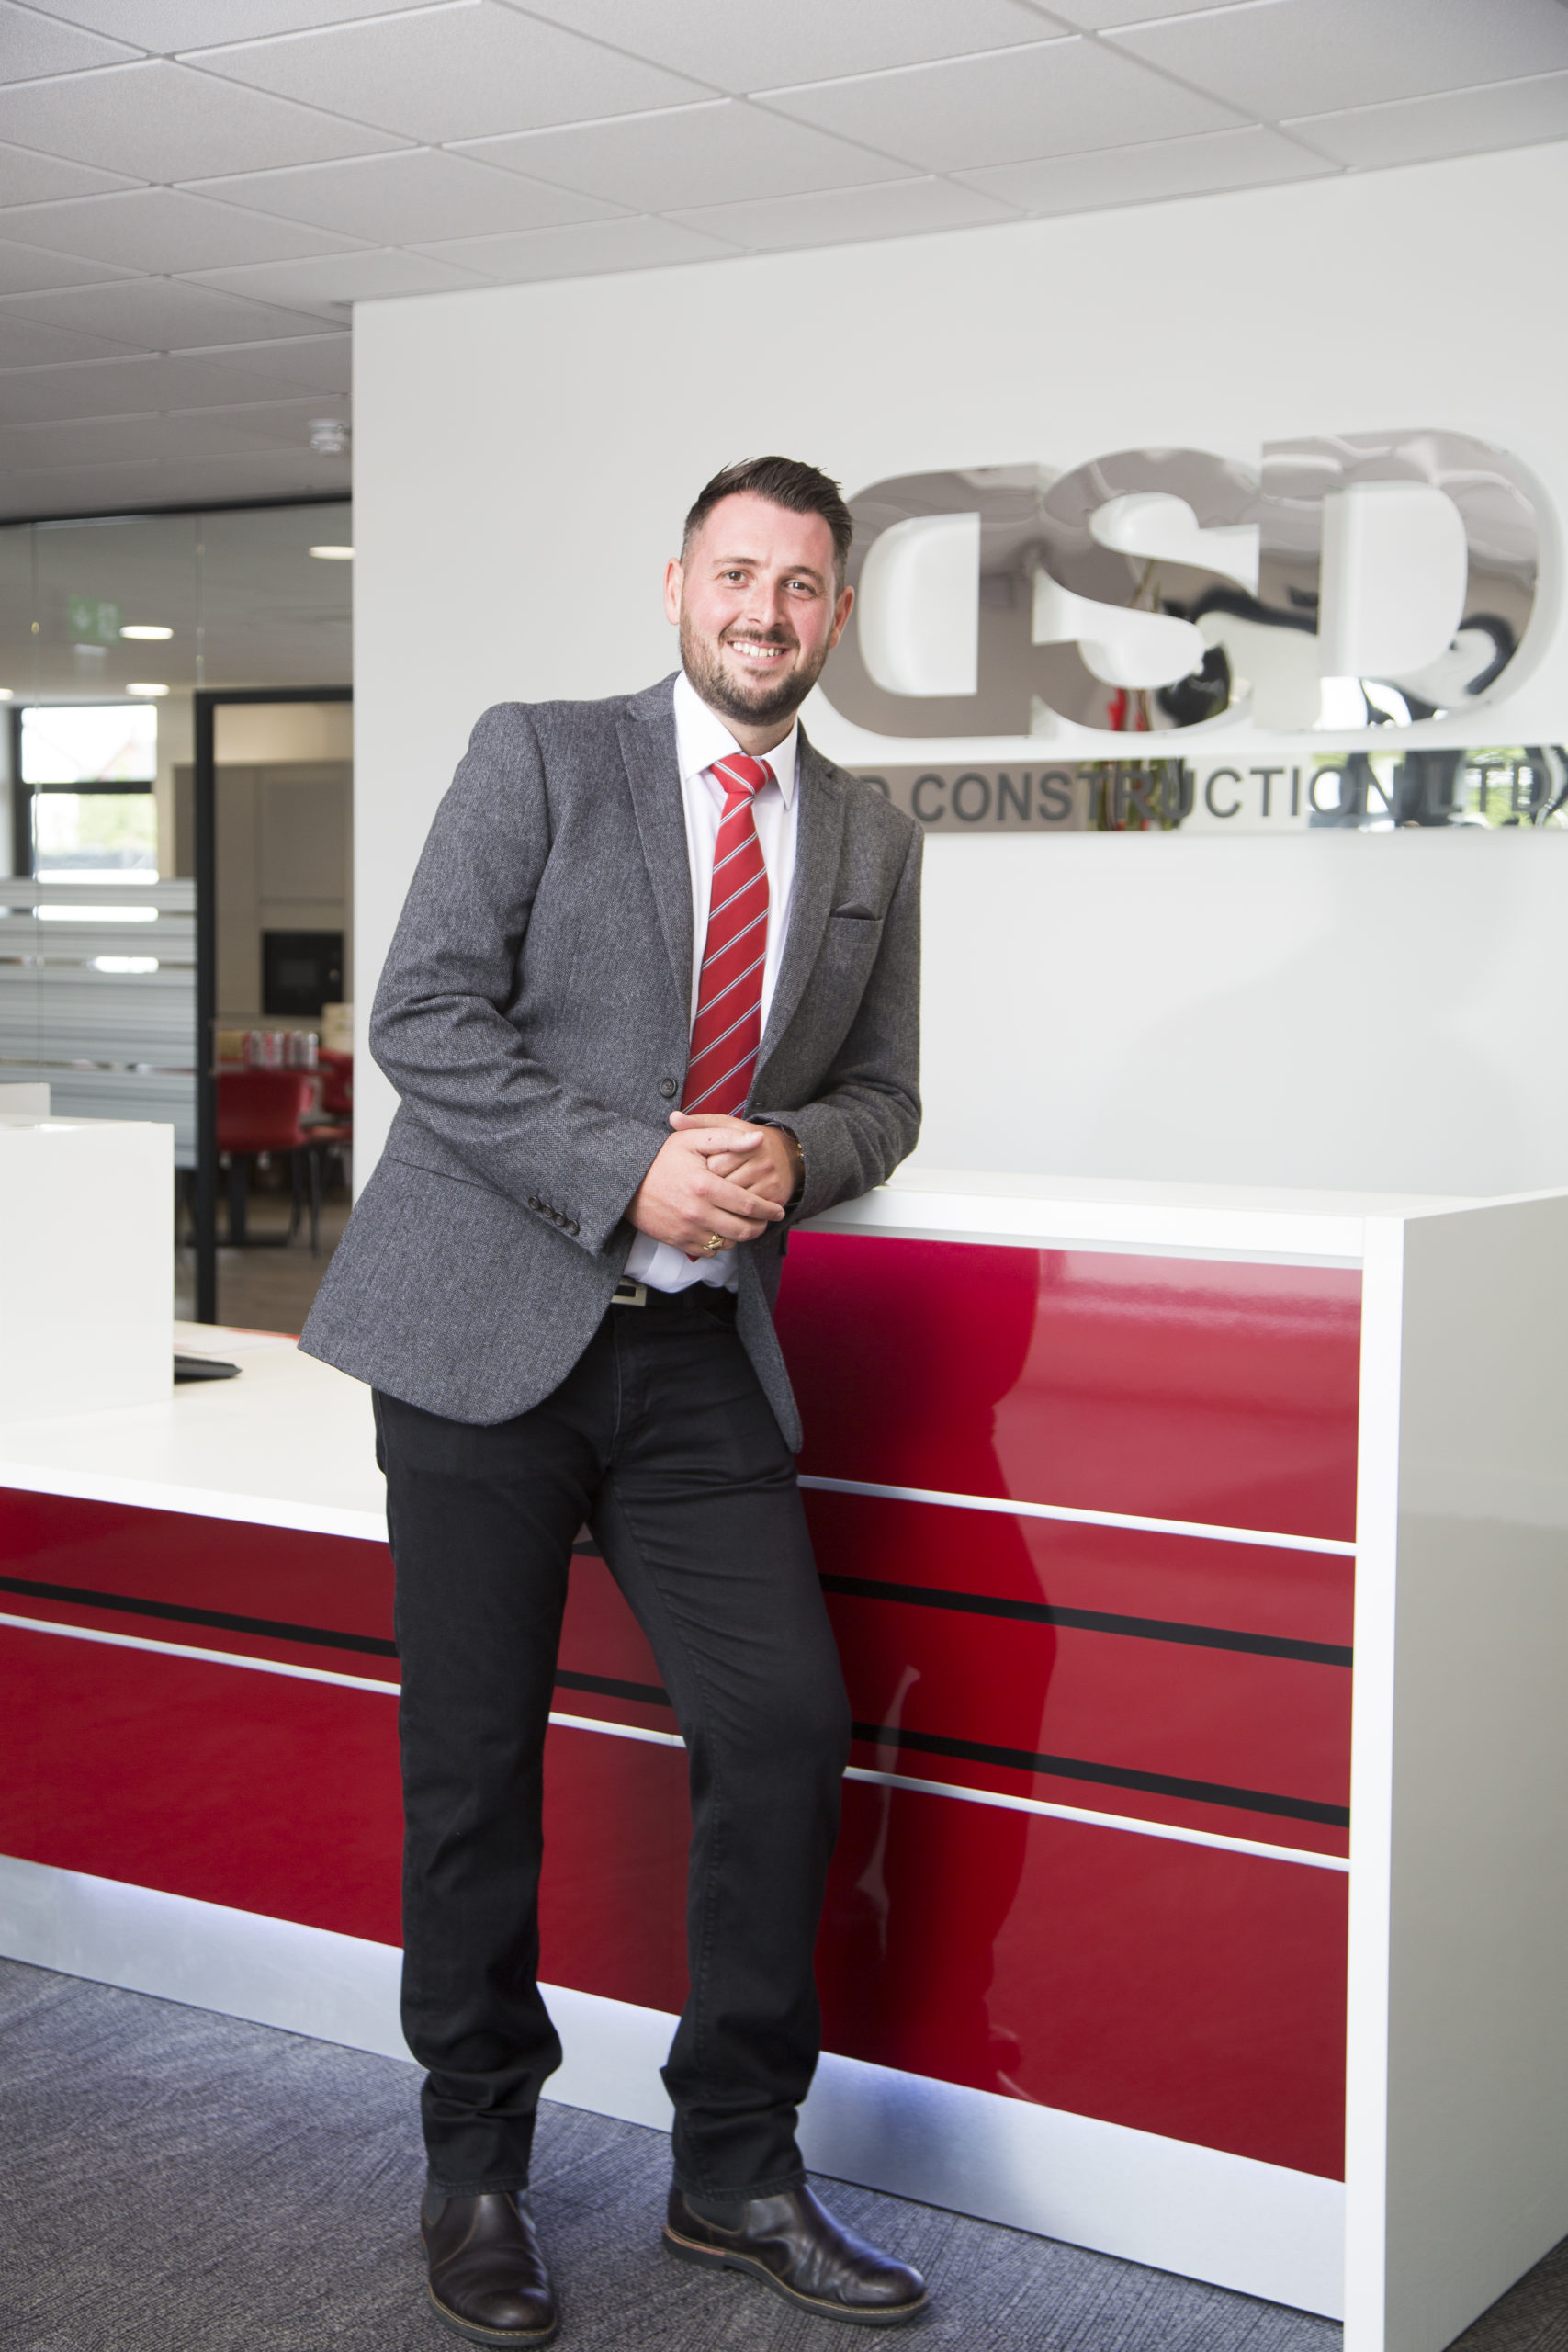 General manager in a suit leaning on reception desk